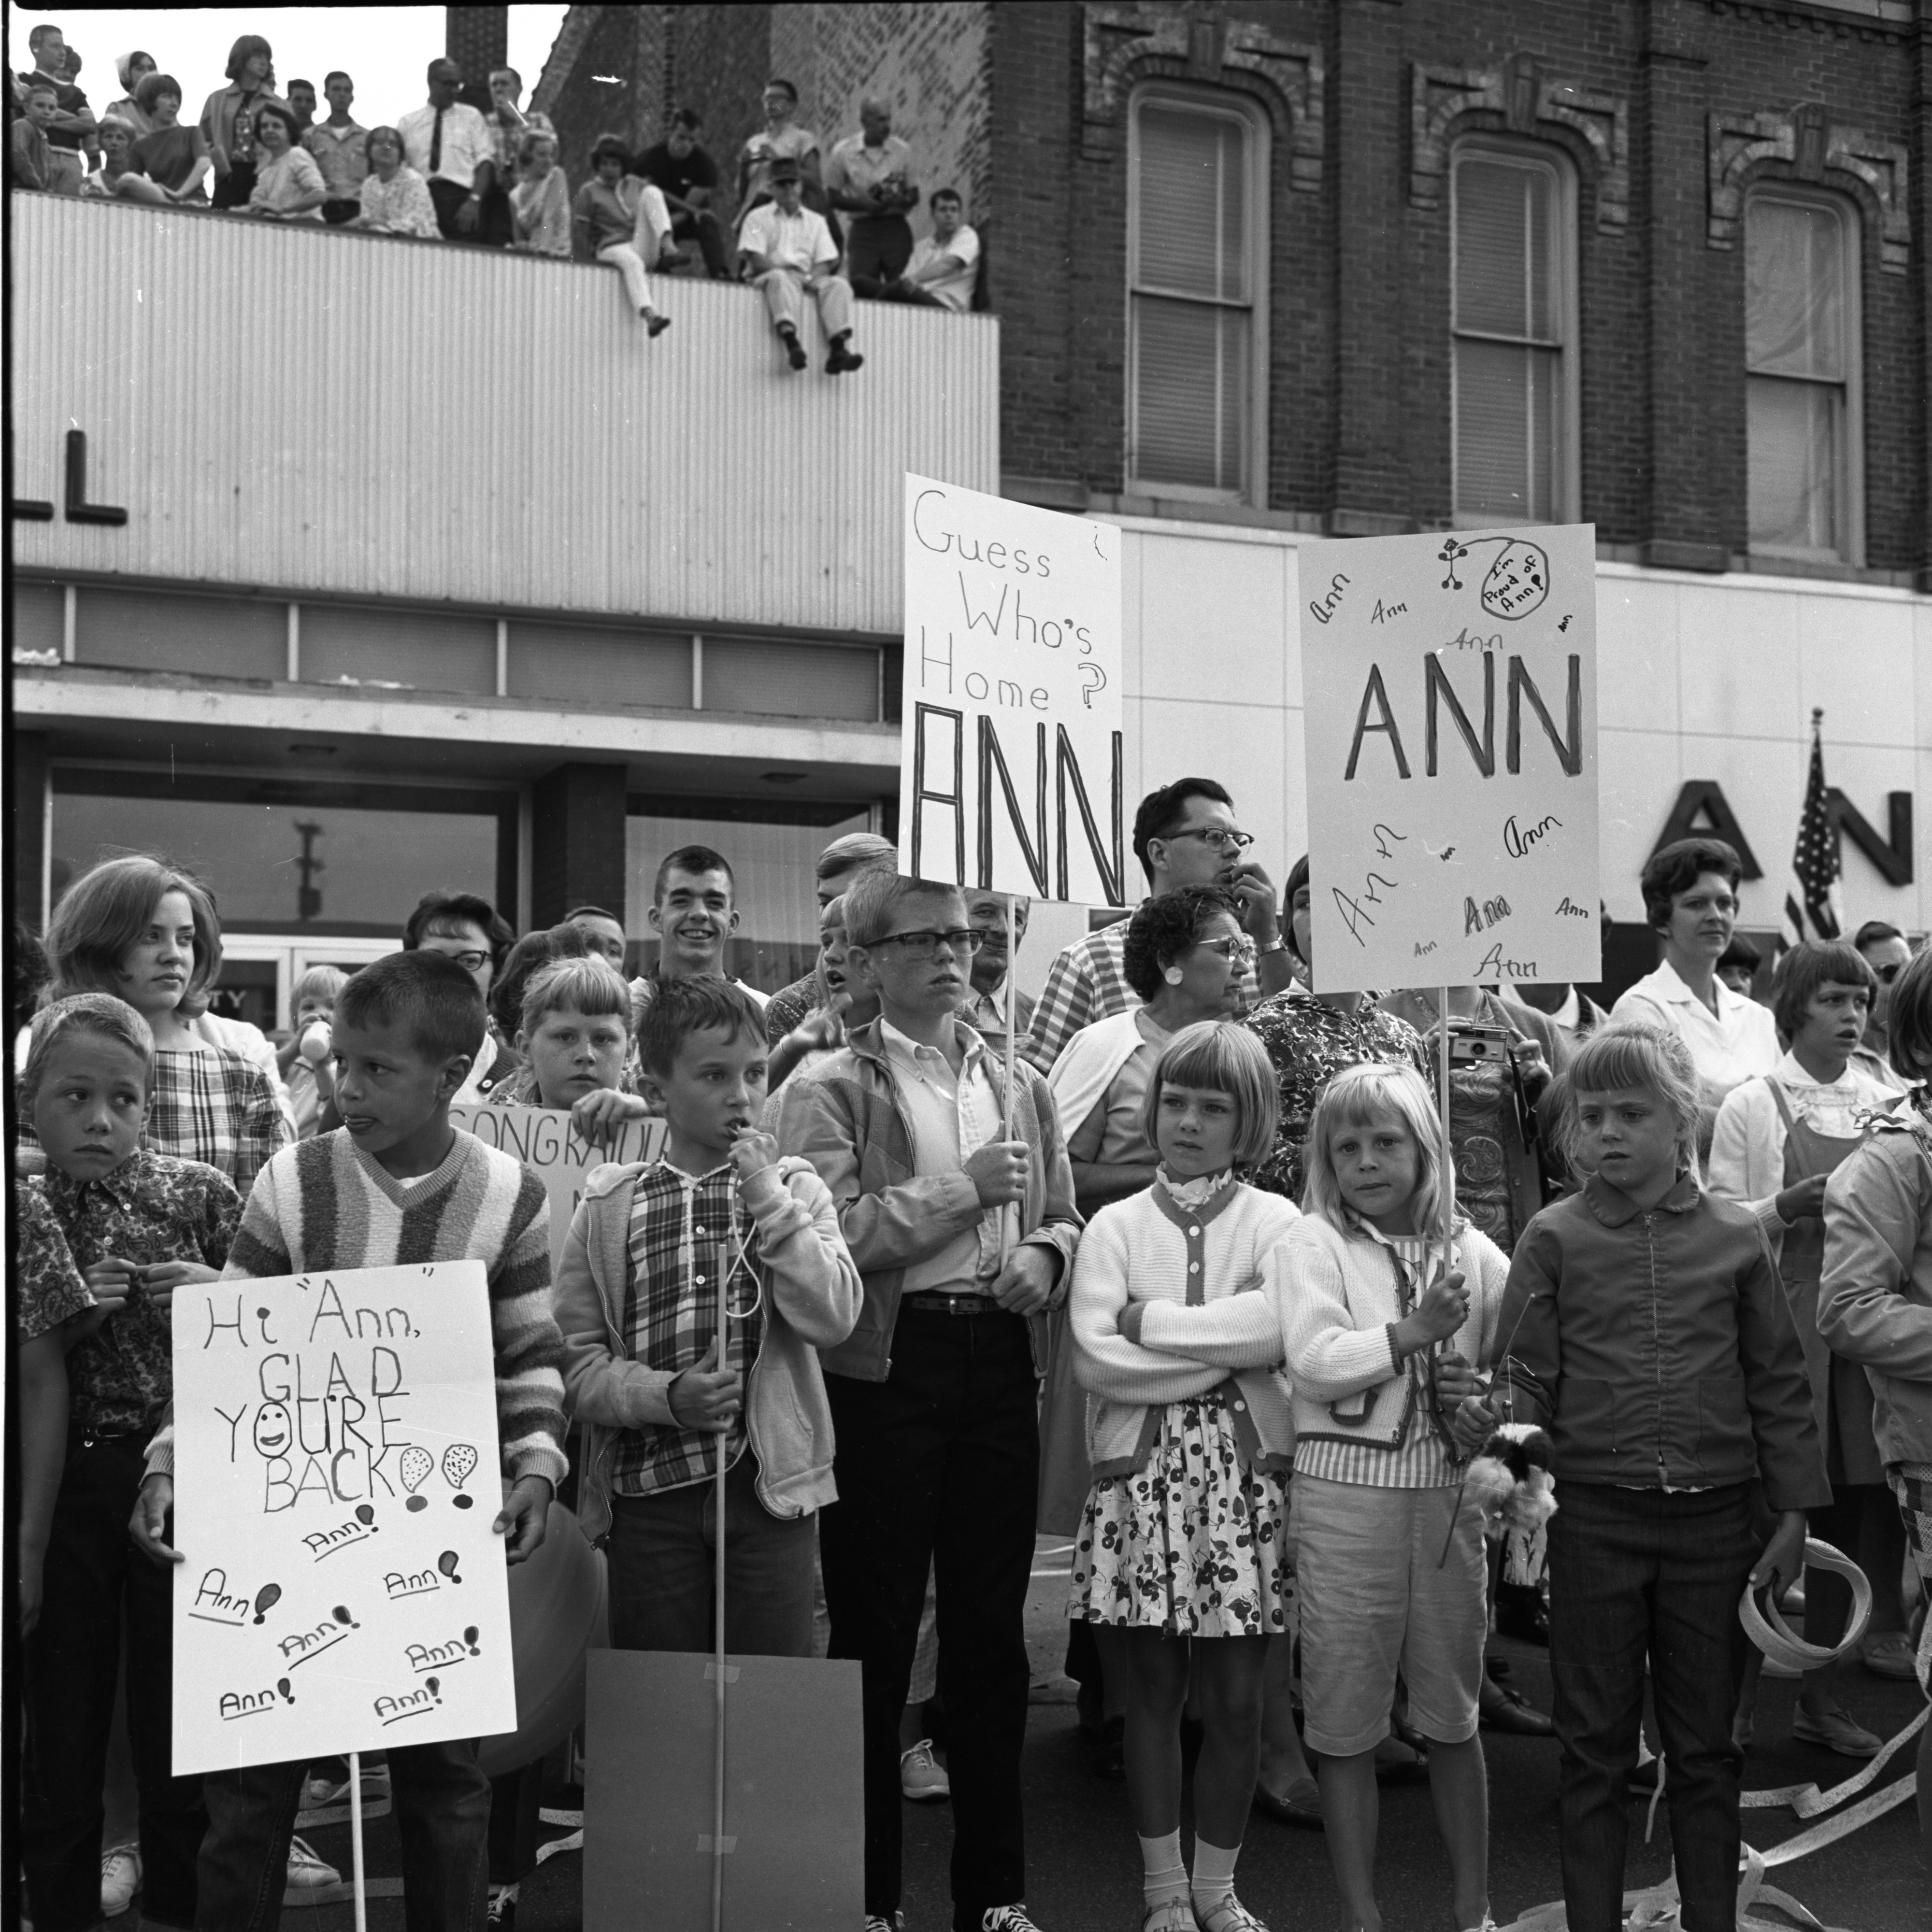 Hand-Made Signs at Saline Parade Honoring Aviator Ann Pellegreno's Amelia Earhart Commemorative Flight, July 1967 image